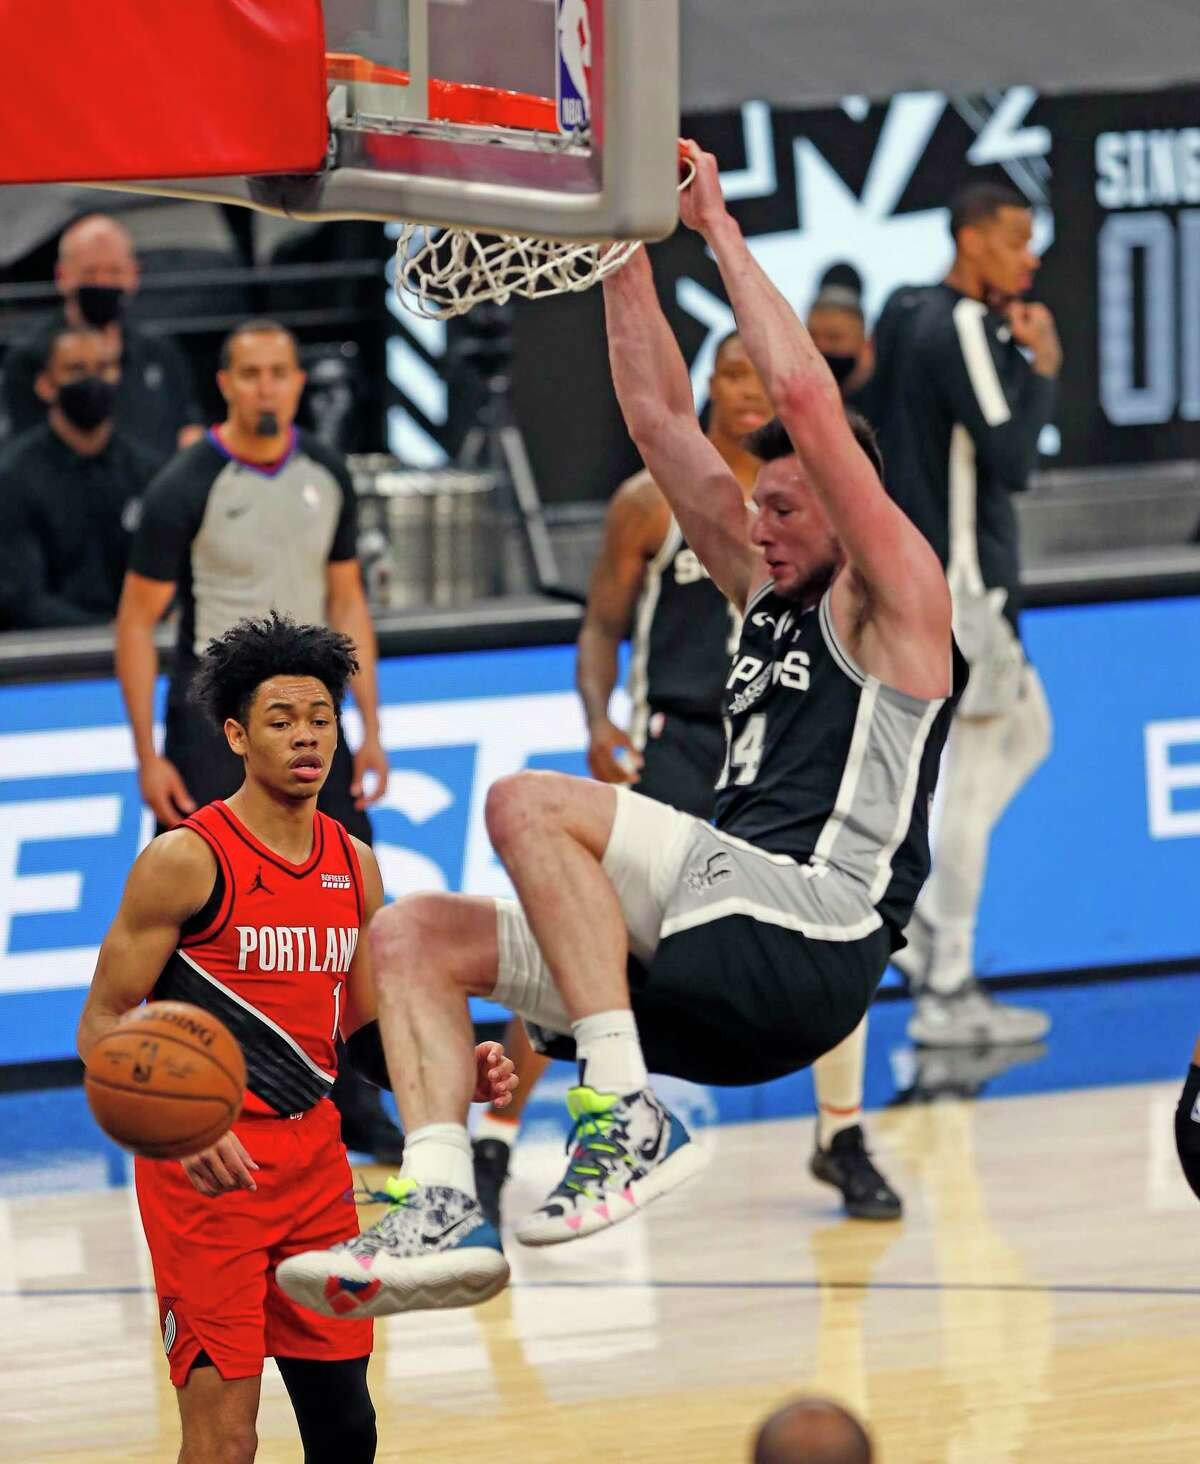 Drew Eubanks of the San Spurs dunks against the Portland Trailblazers in the first half at AT&T Center on April 16, 2021 in San Antonio.